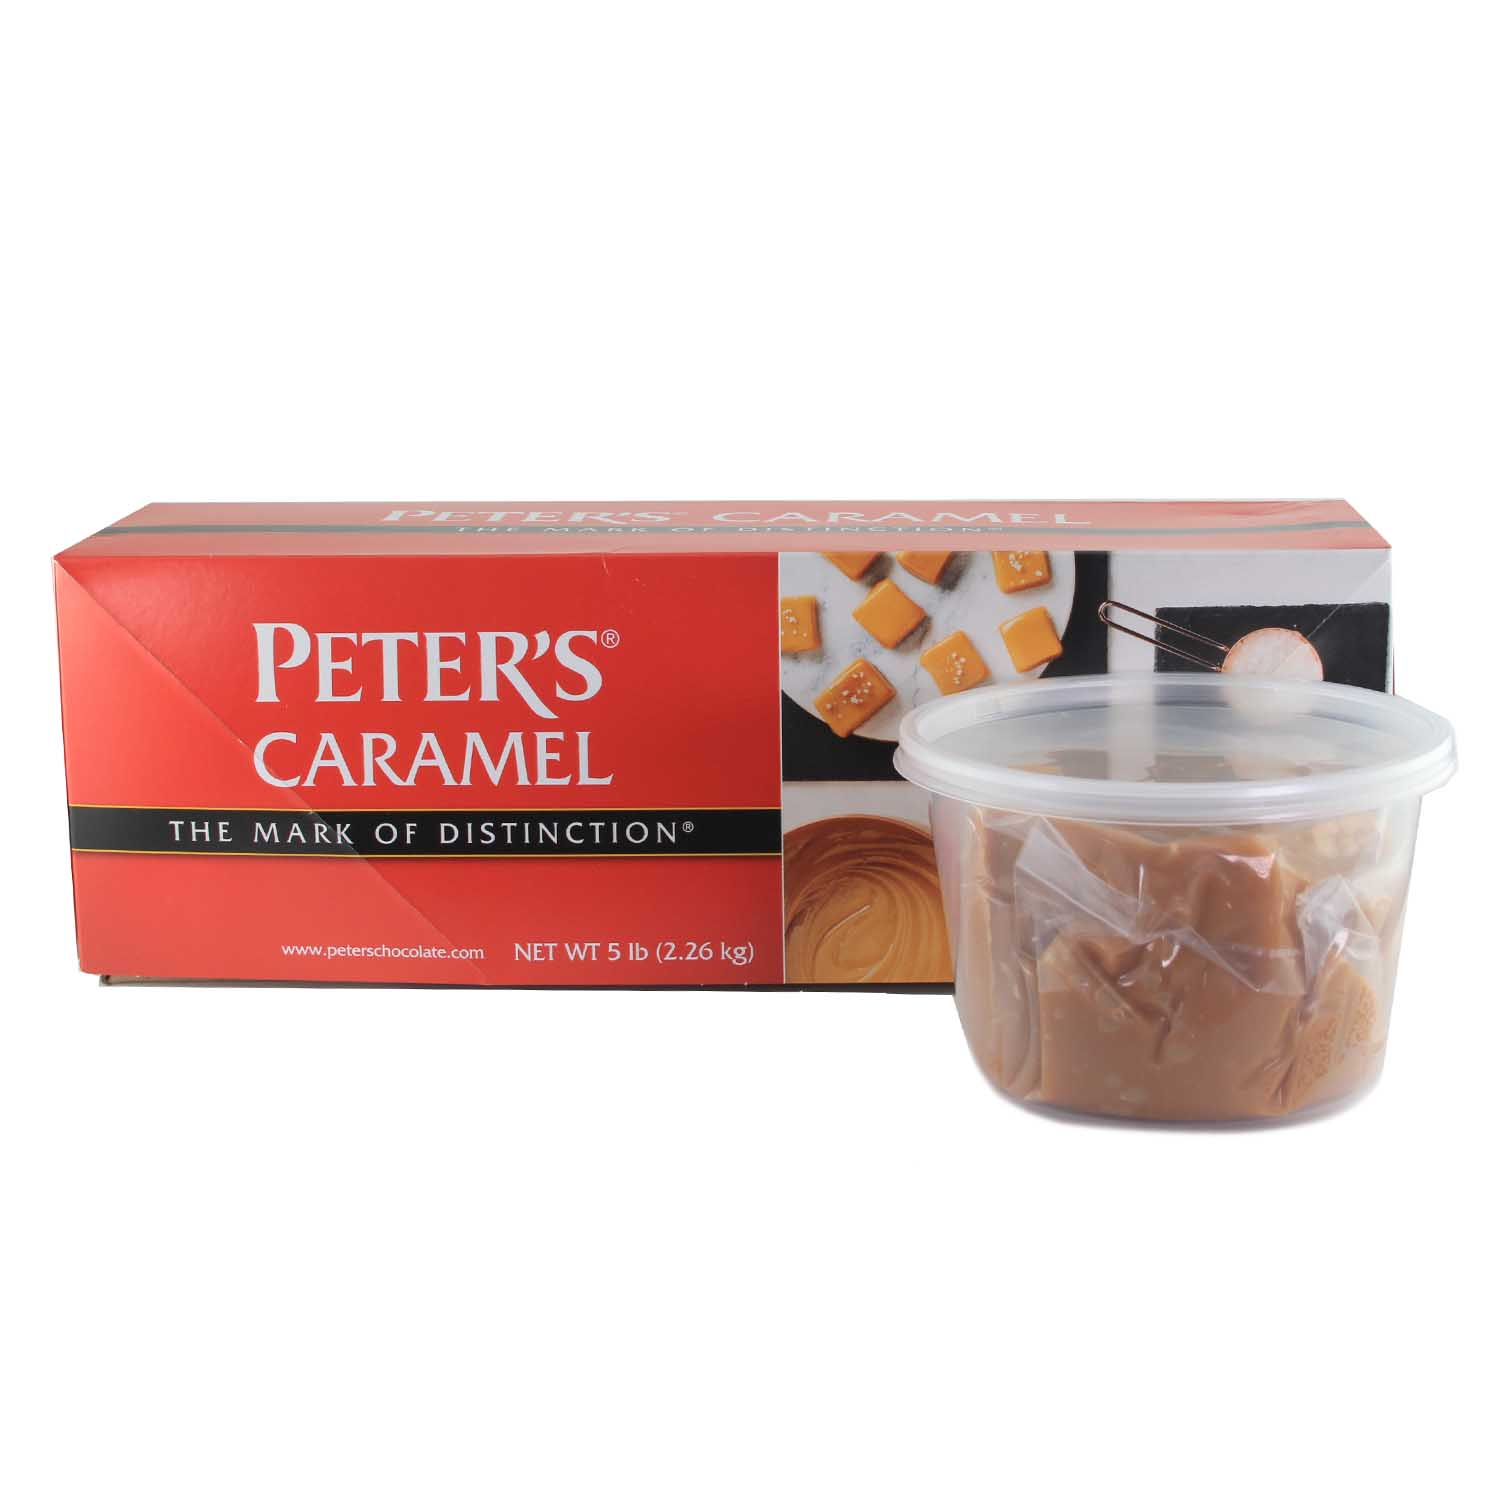 Peter's Caramel (Old # 75-2000)